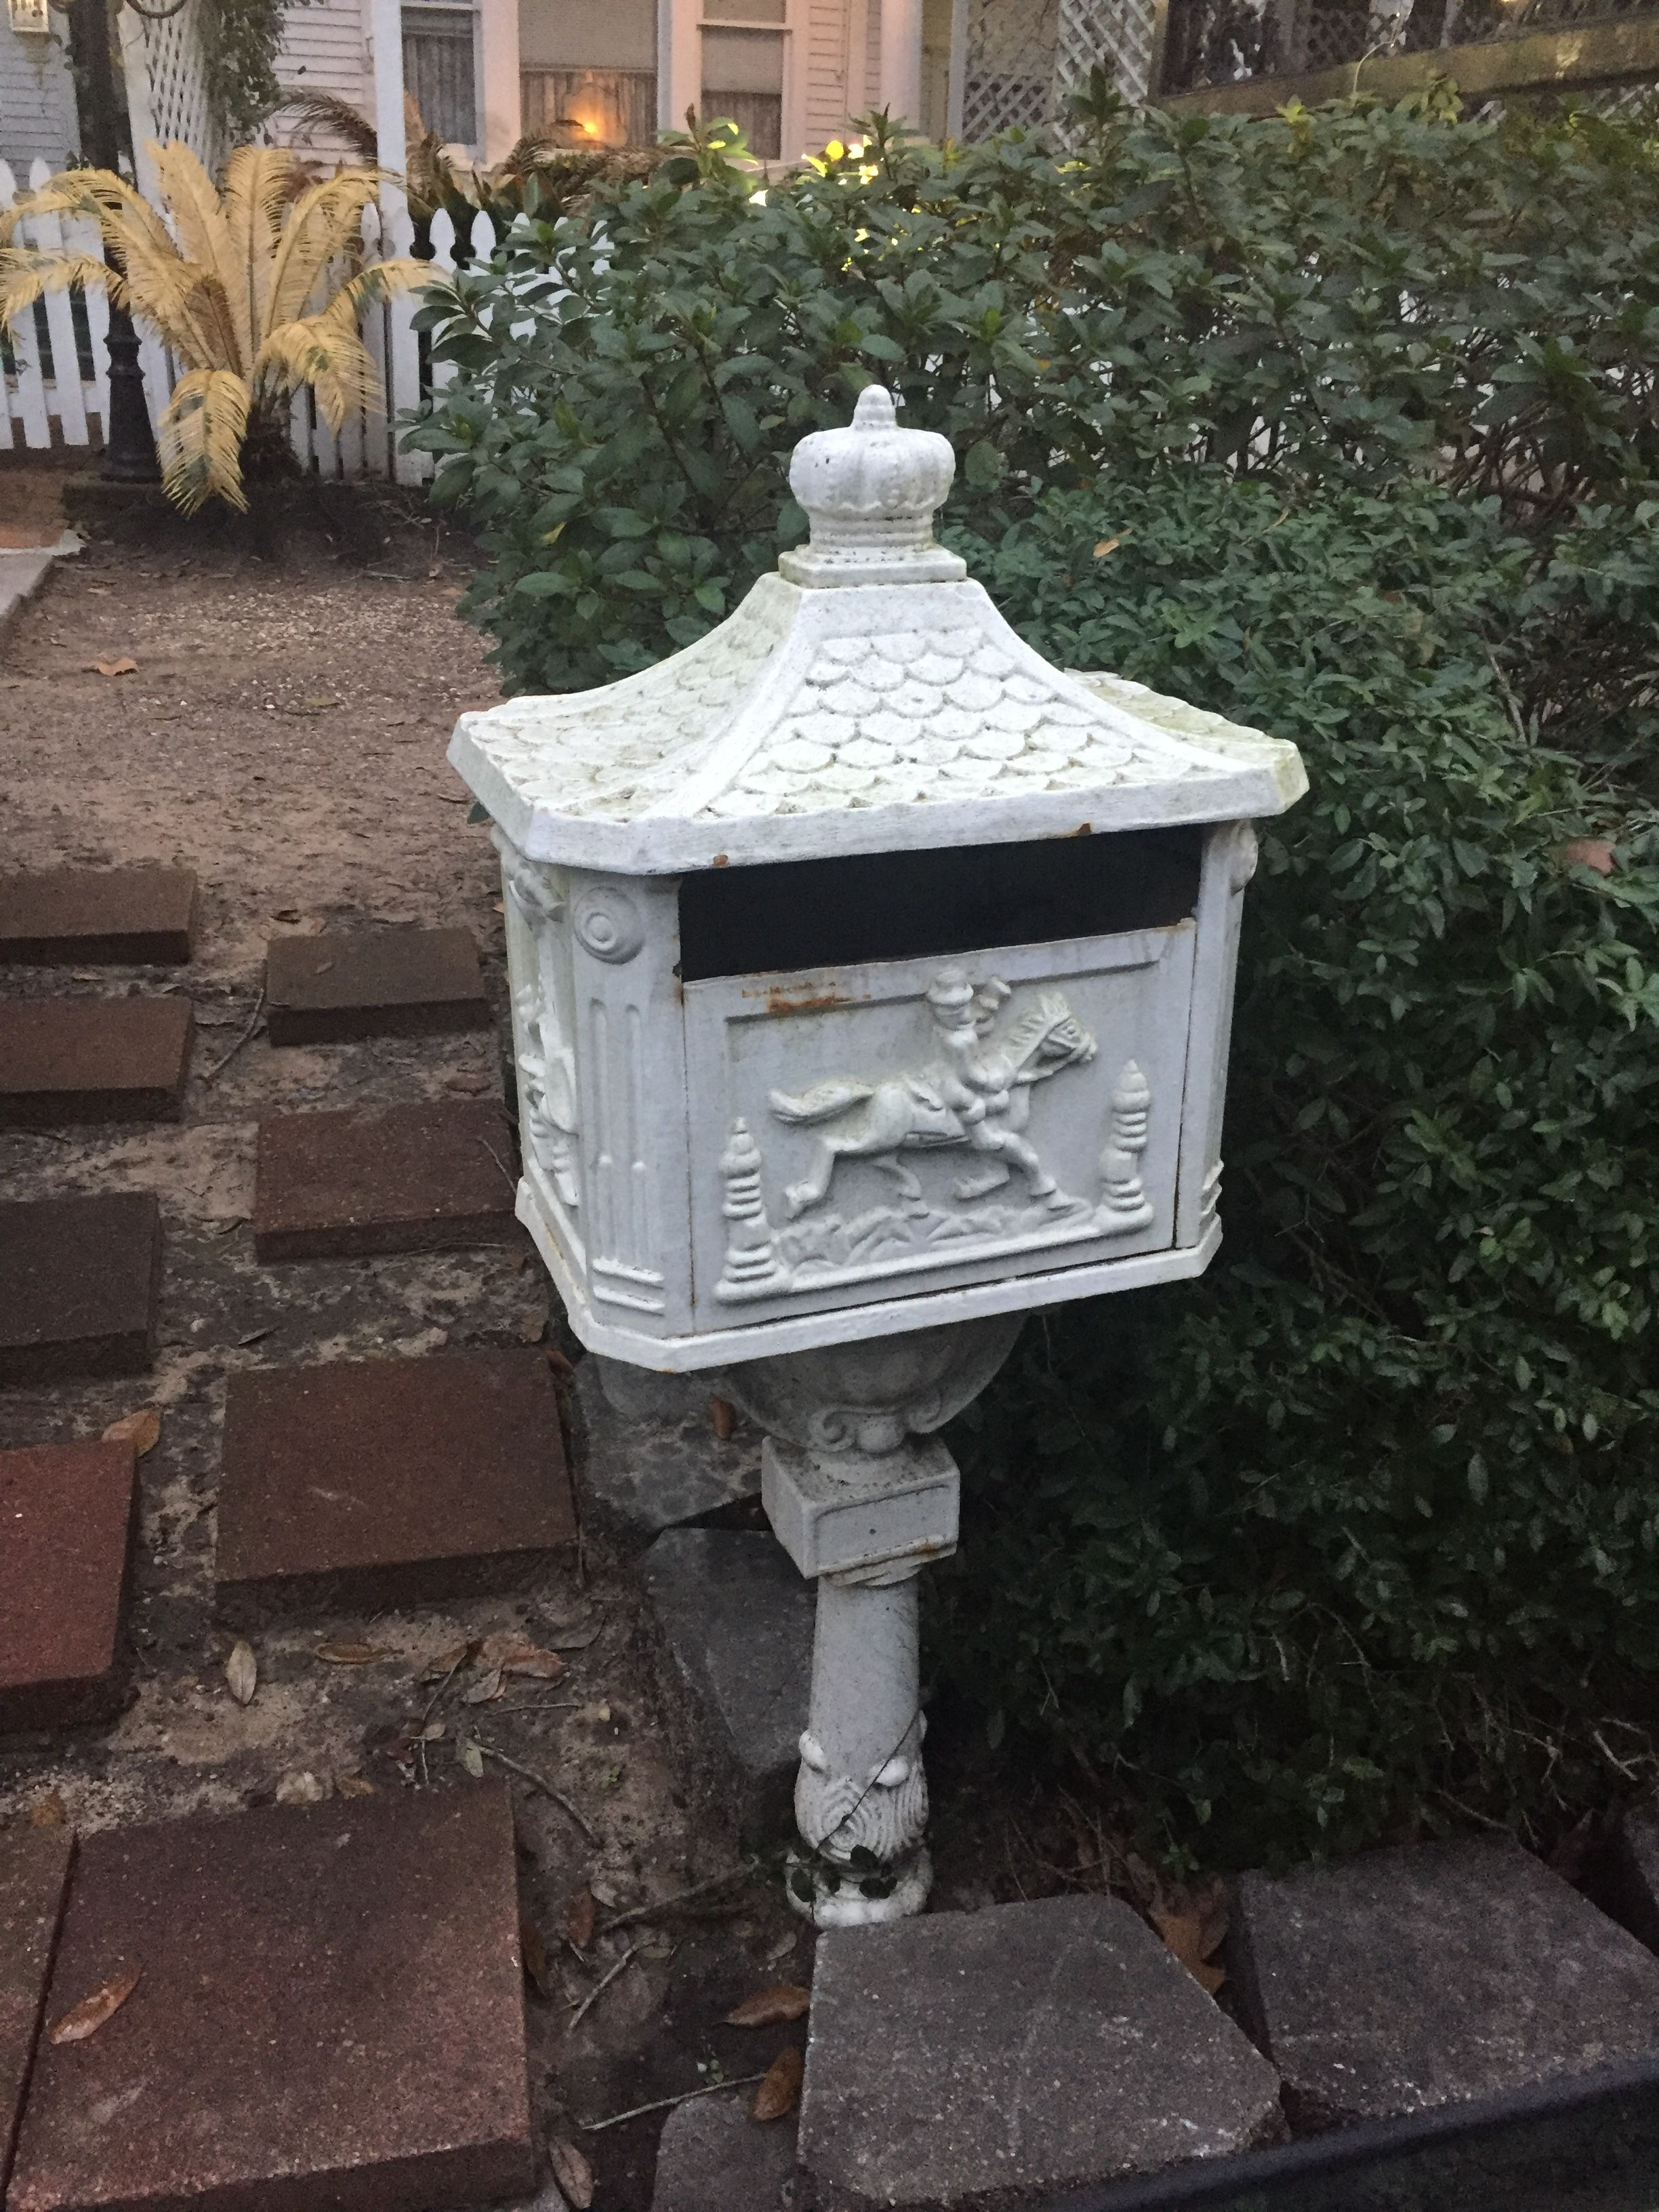 security bestchoiceproducts aluminum pedestal mailbox heavy duty products product best box victorian postal cast mail rakuten white choice new shop